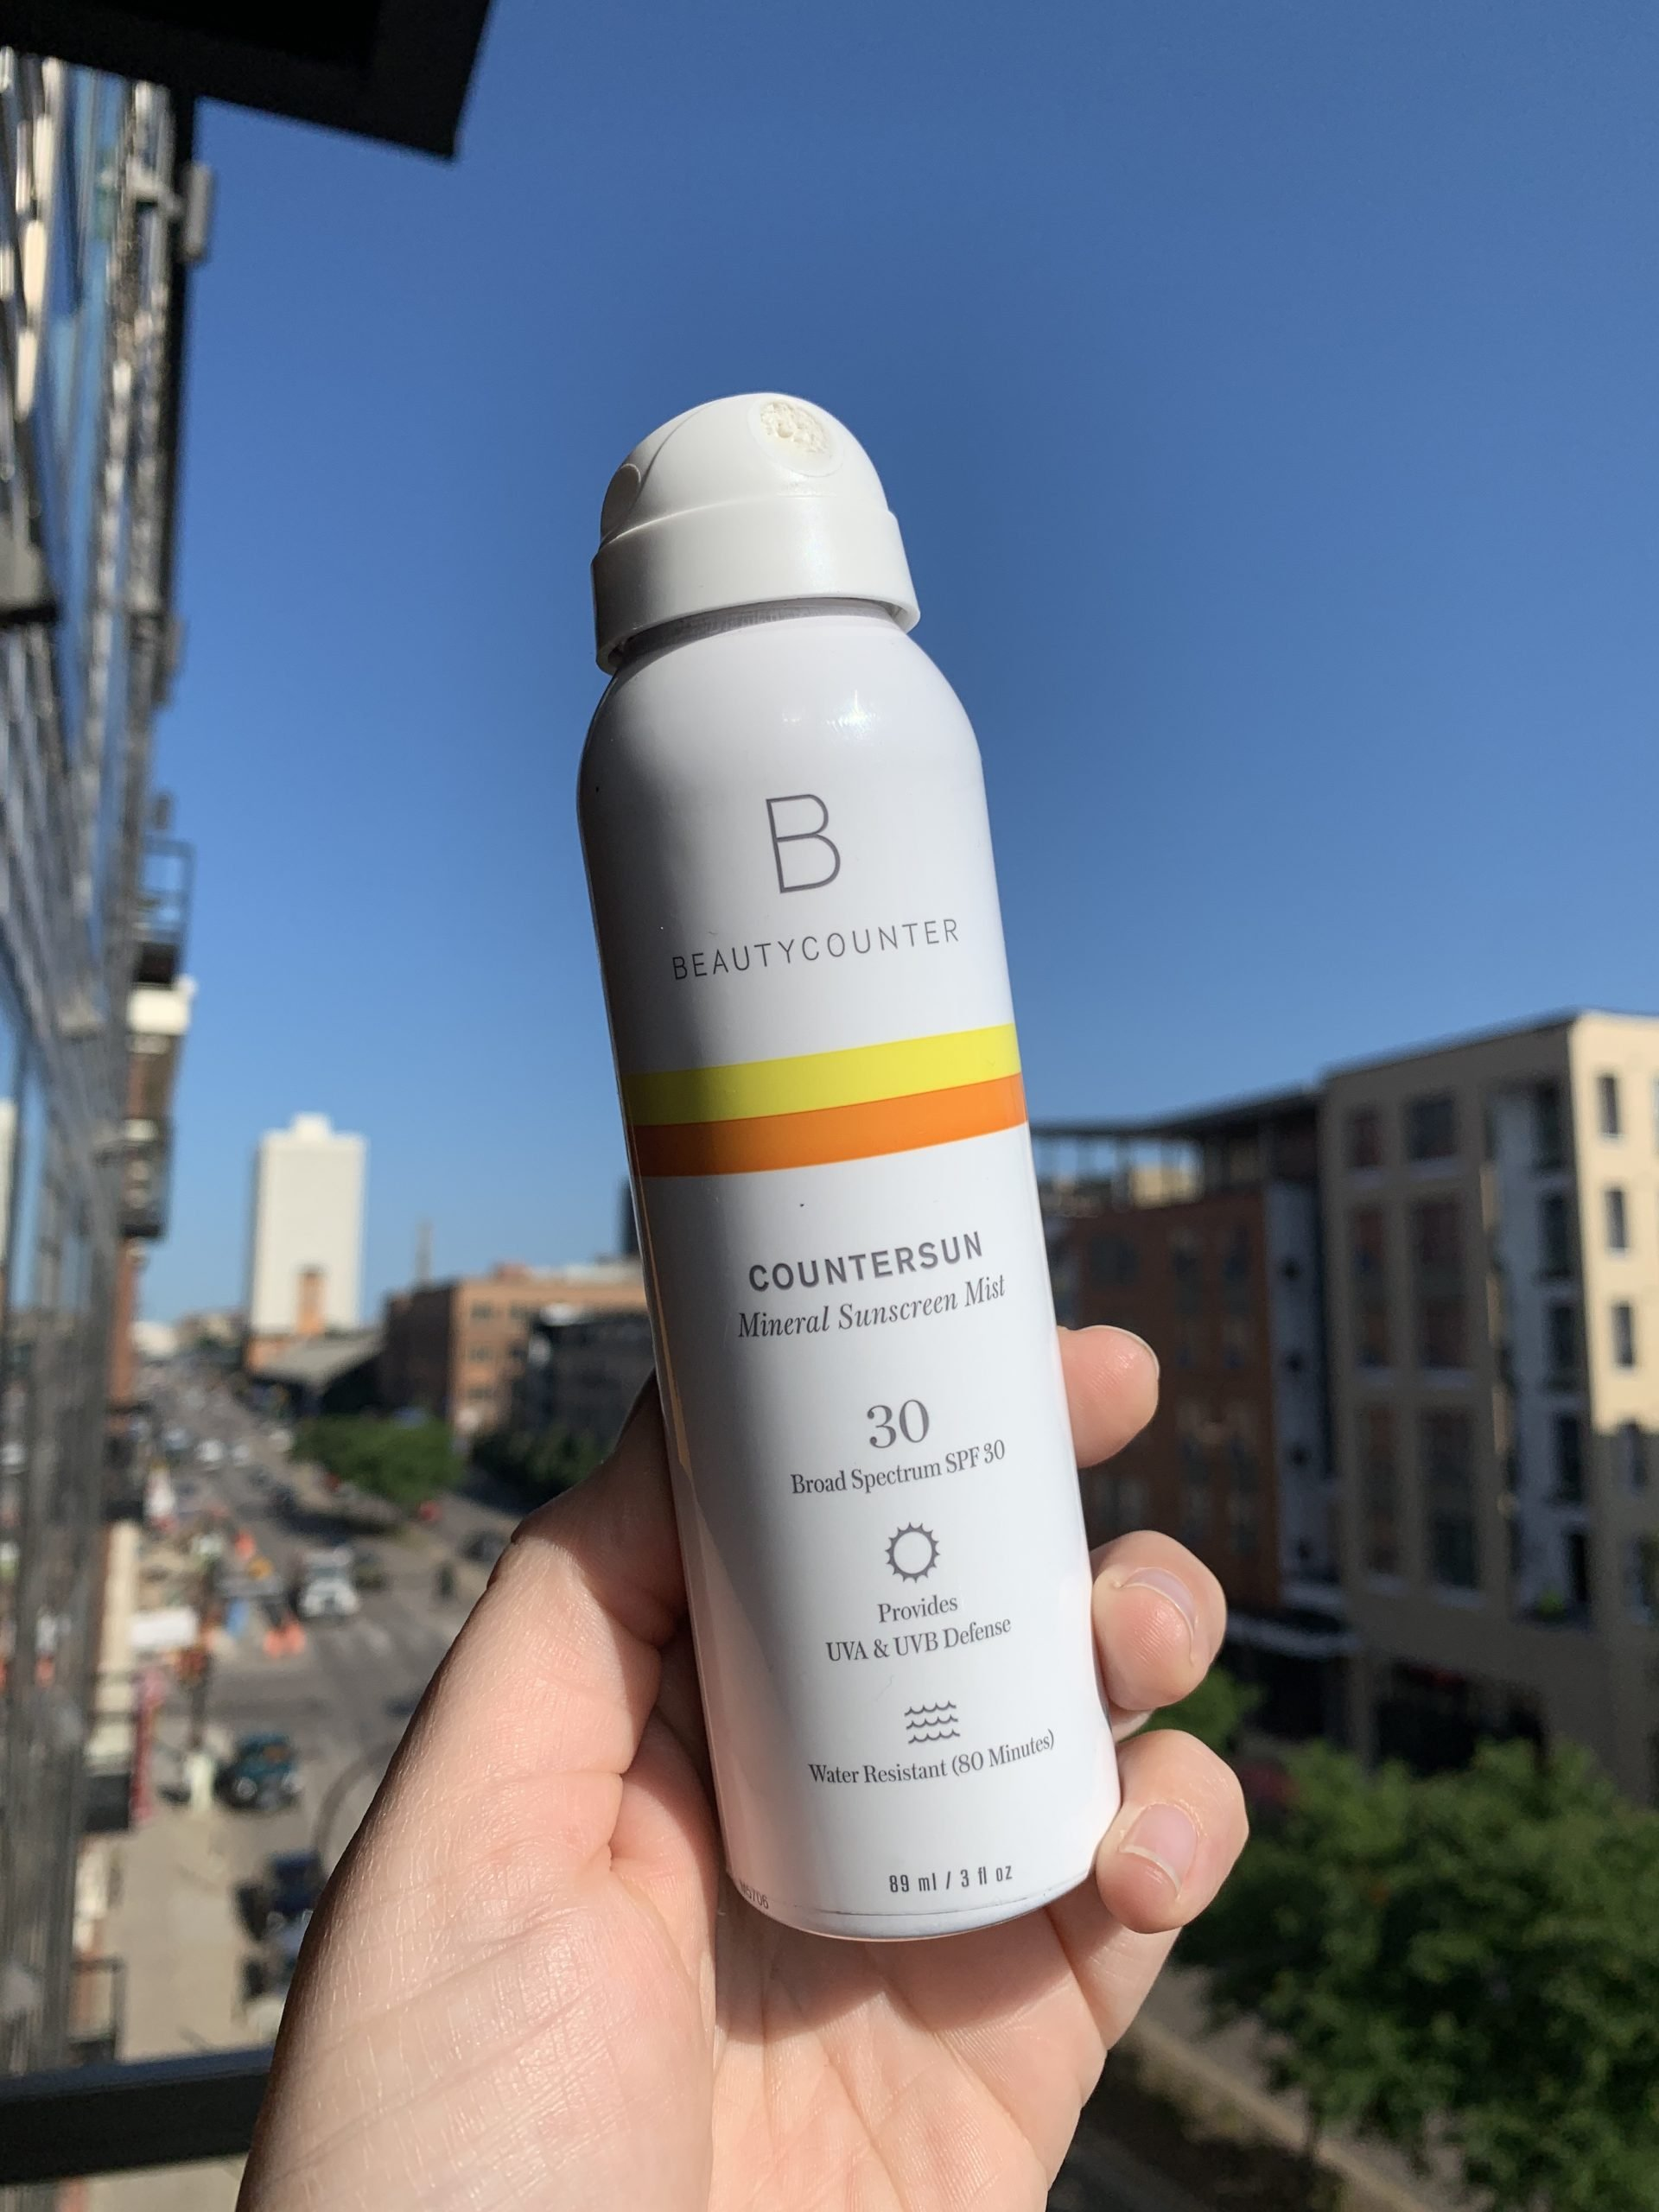 A hand holding a bottle of Countersun Mineral Sunscreen Spray in front of a city landscape with a beautiful blue sky in the background.